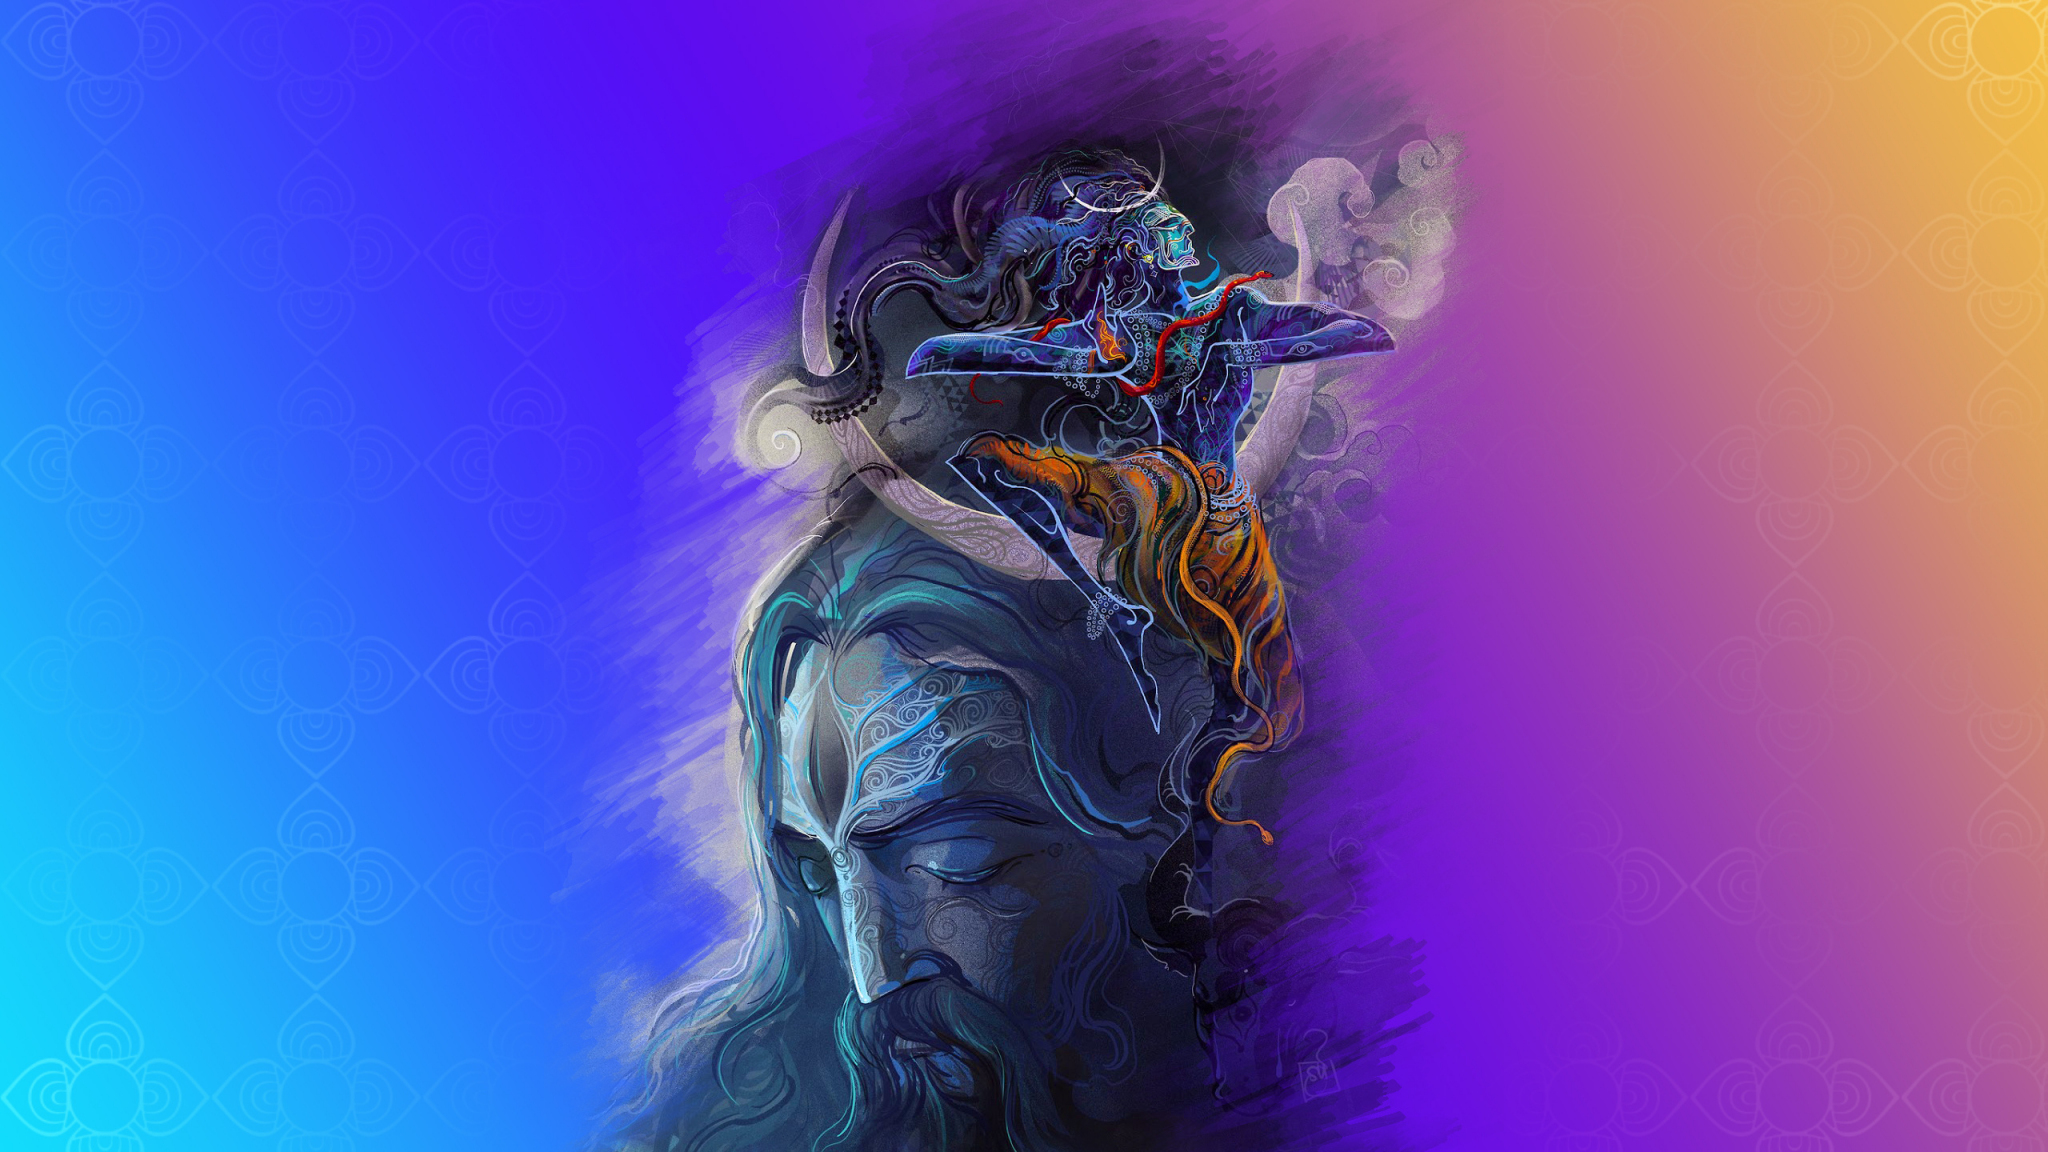 Download 2048x1152 Wallpaper Lord Shiva God Digital Art Dual Wide Widescreen 2048x1152 Hd Image Background 4474